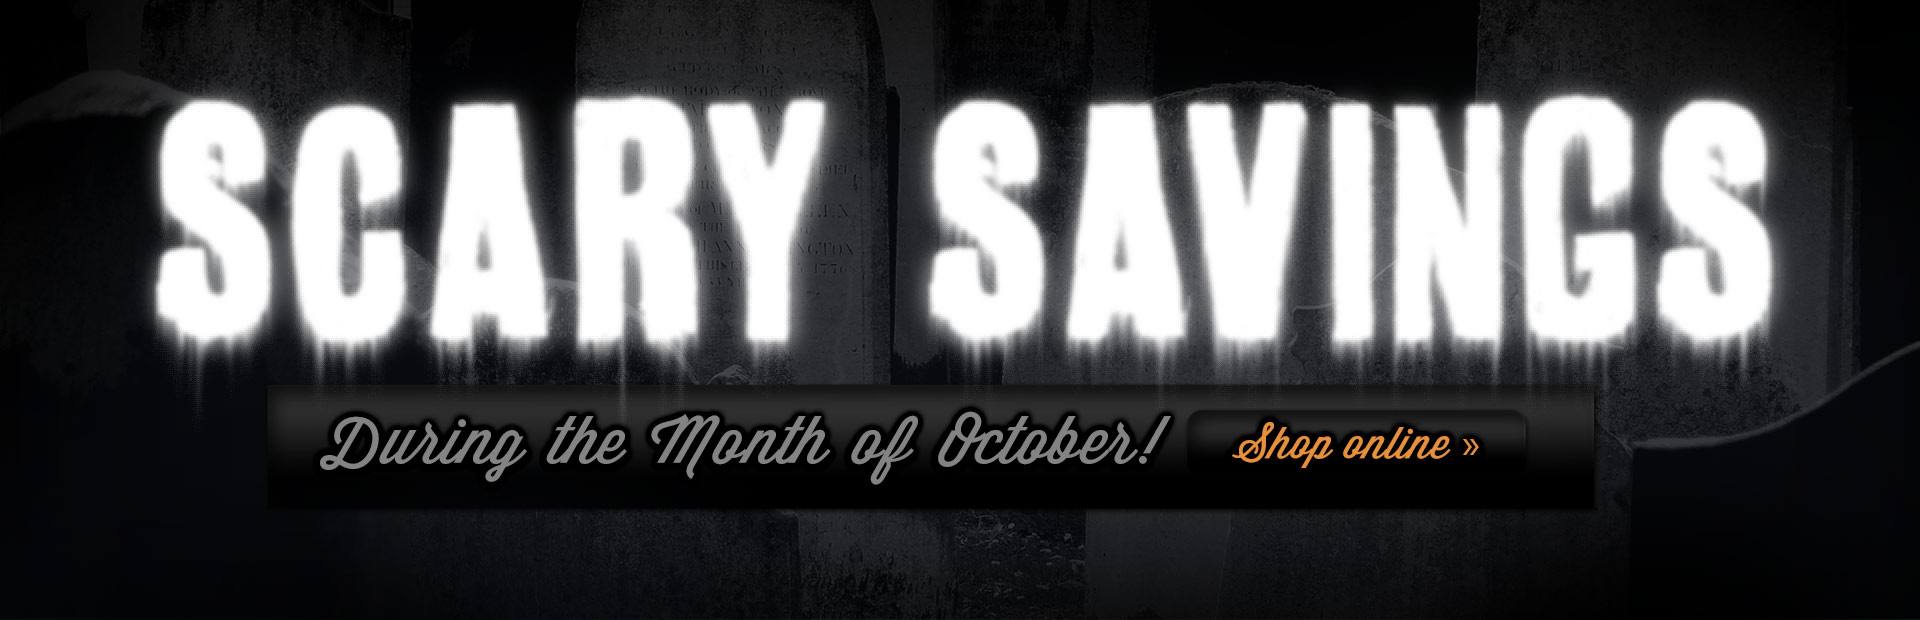 Check out our scary savings during the month of October! Click here to shop online.